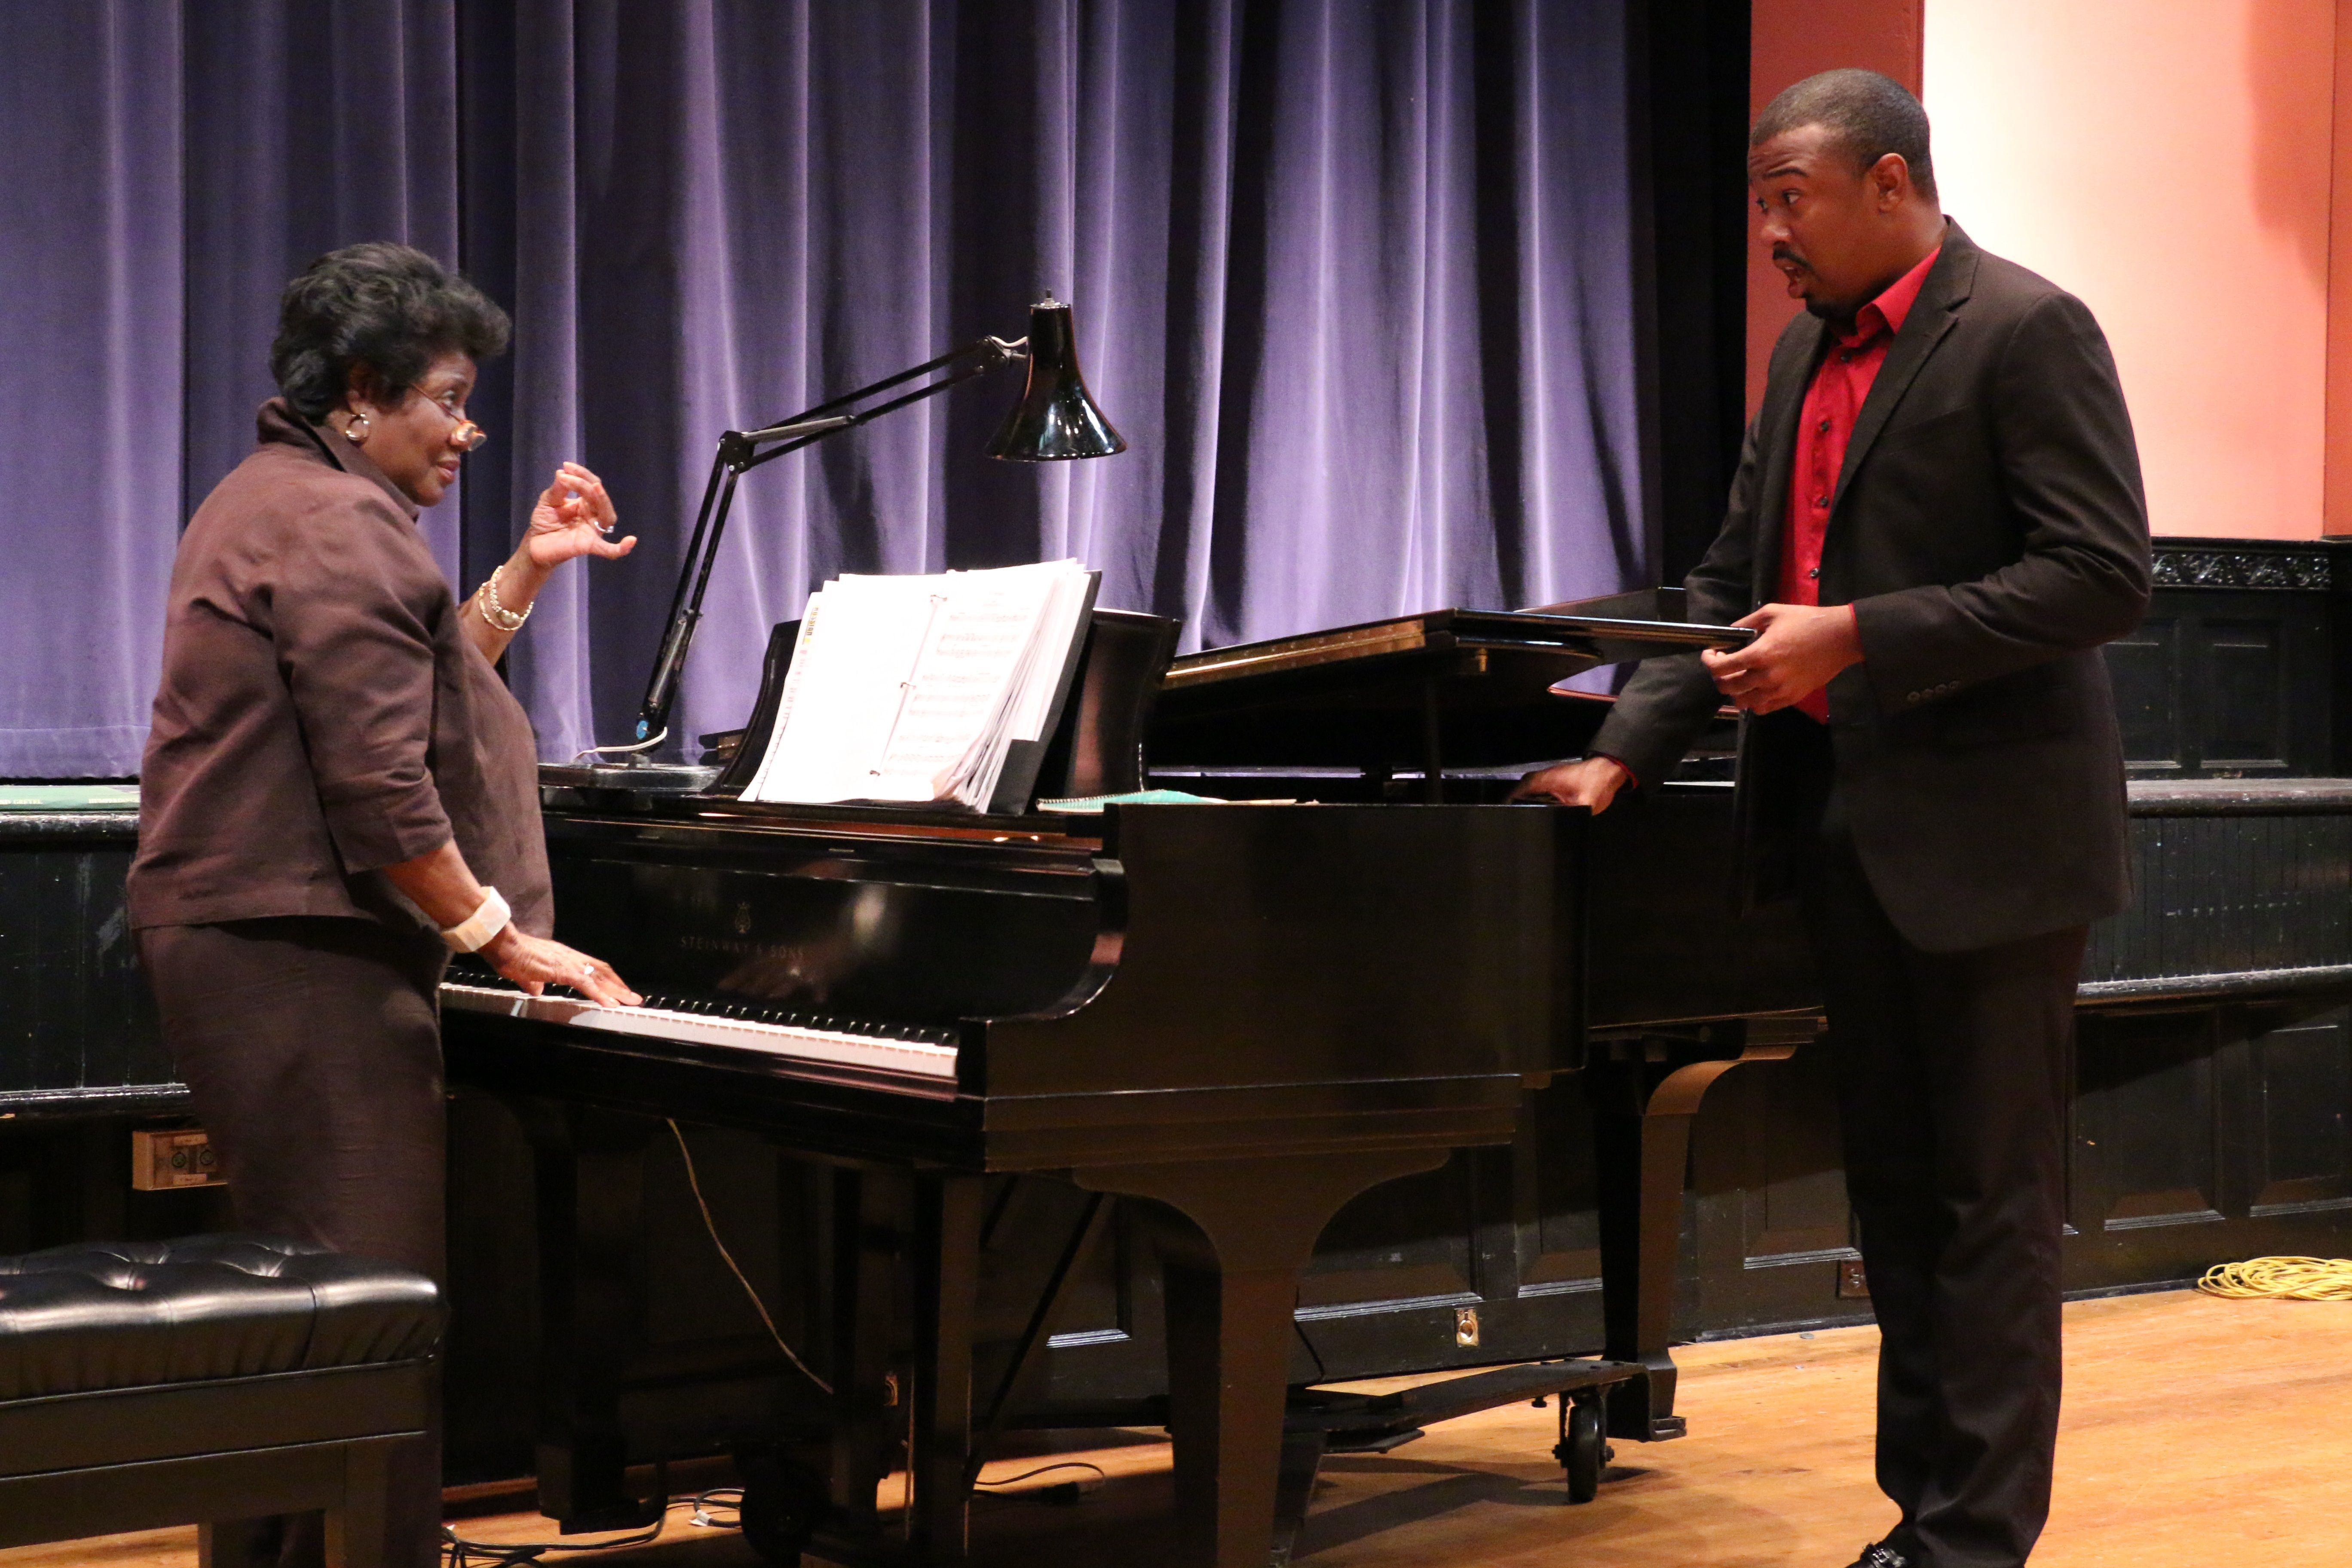 Mezzo-soprano Florence Quivar works with bass-baritone Brenton Mattox during the 2016 Russian Opera Workshop. She returns for another masterclass this summer.